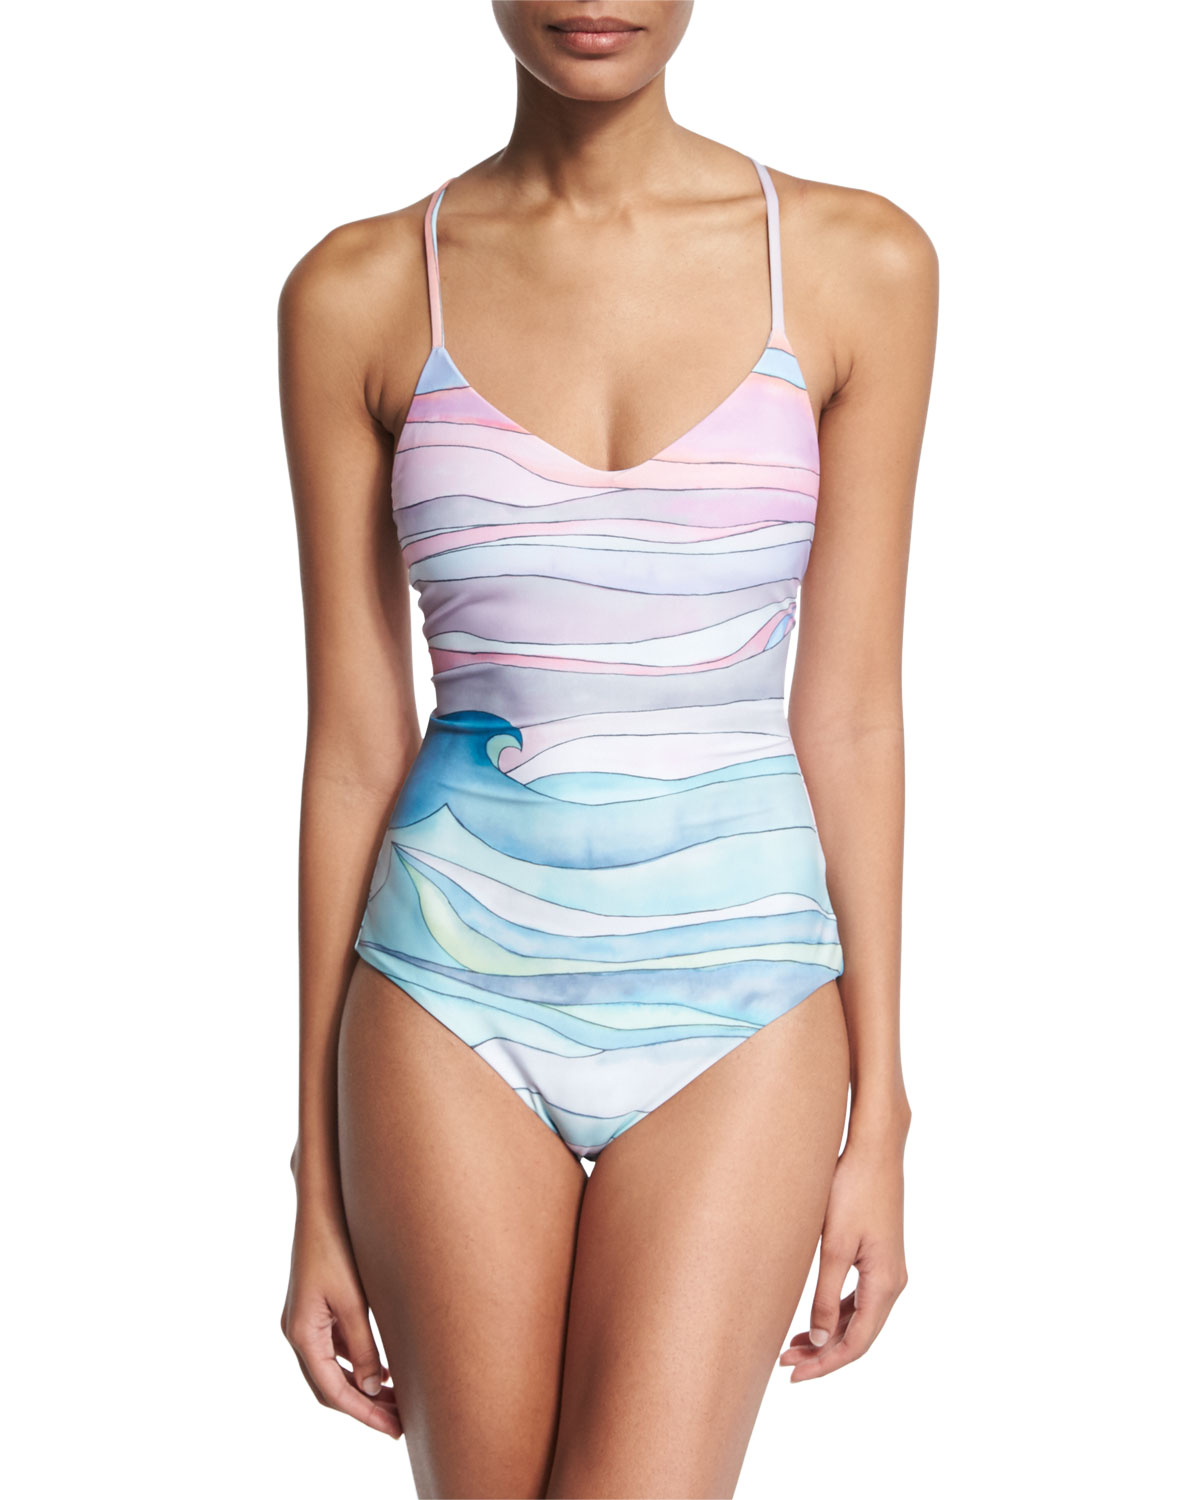 84d323013d6 Mara Hoffman Waves Lace-Up Maillot One-Piece Swimsuit | Neiman Marcus